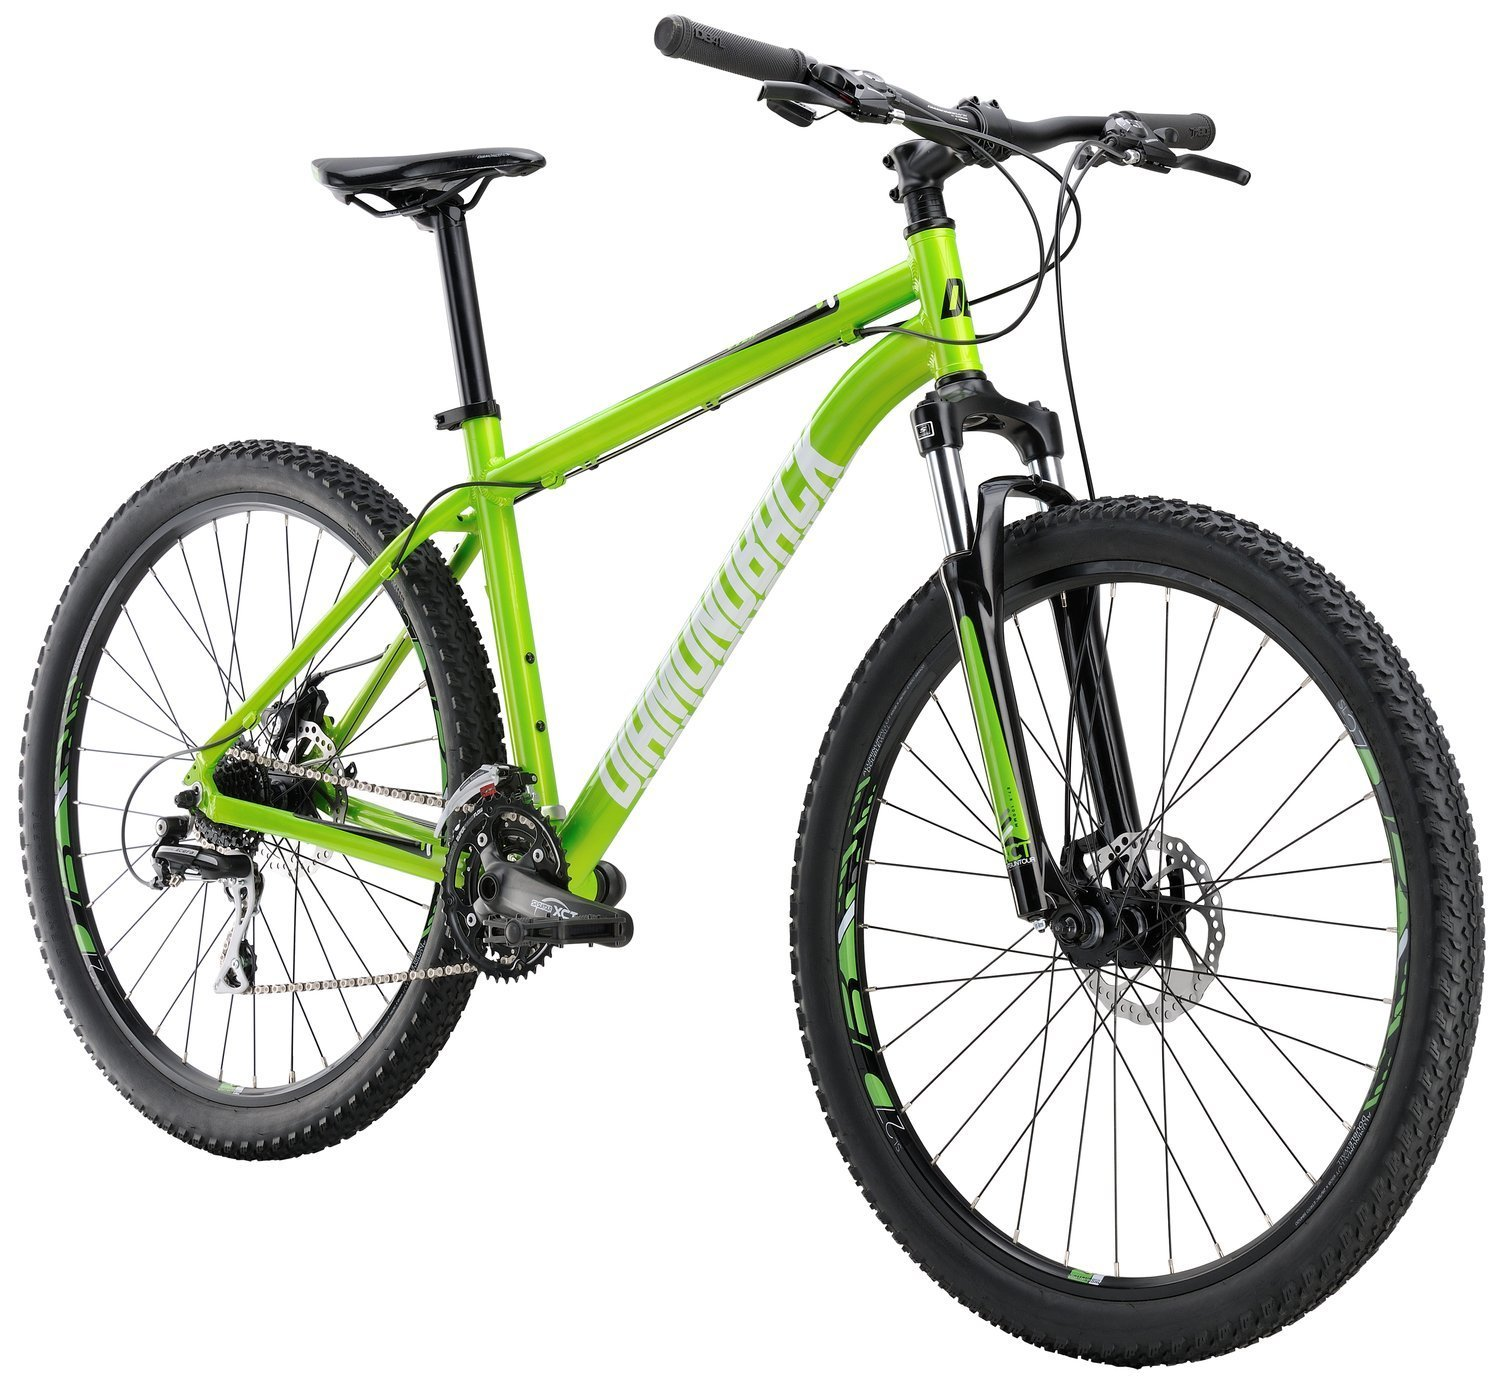 Diamondback Bicycles Overdrive ST Hardtail Mountain Bike Review